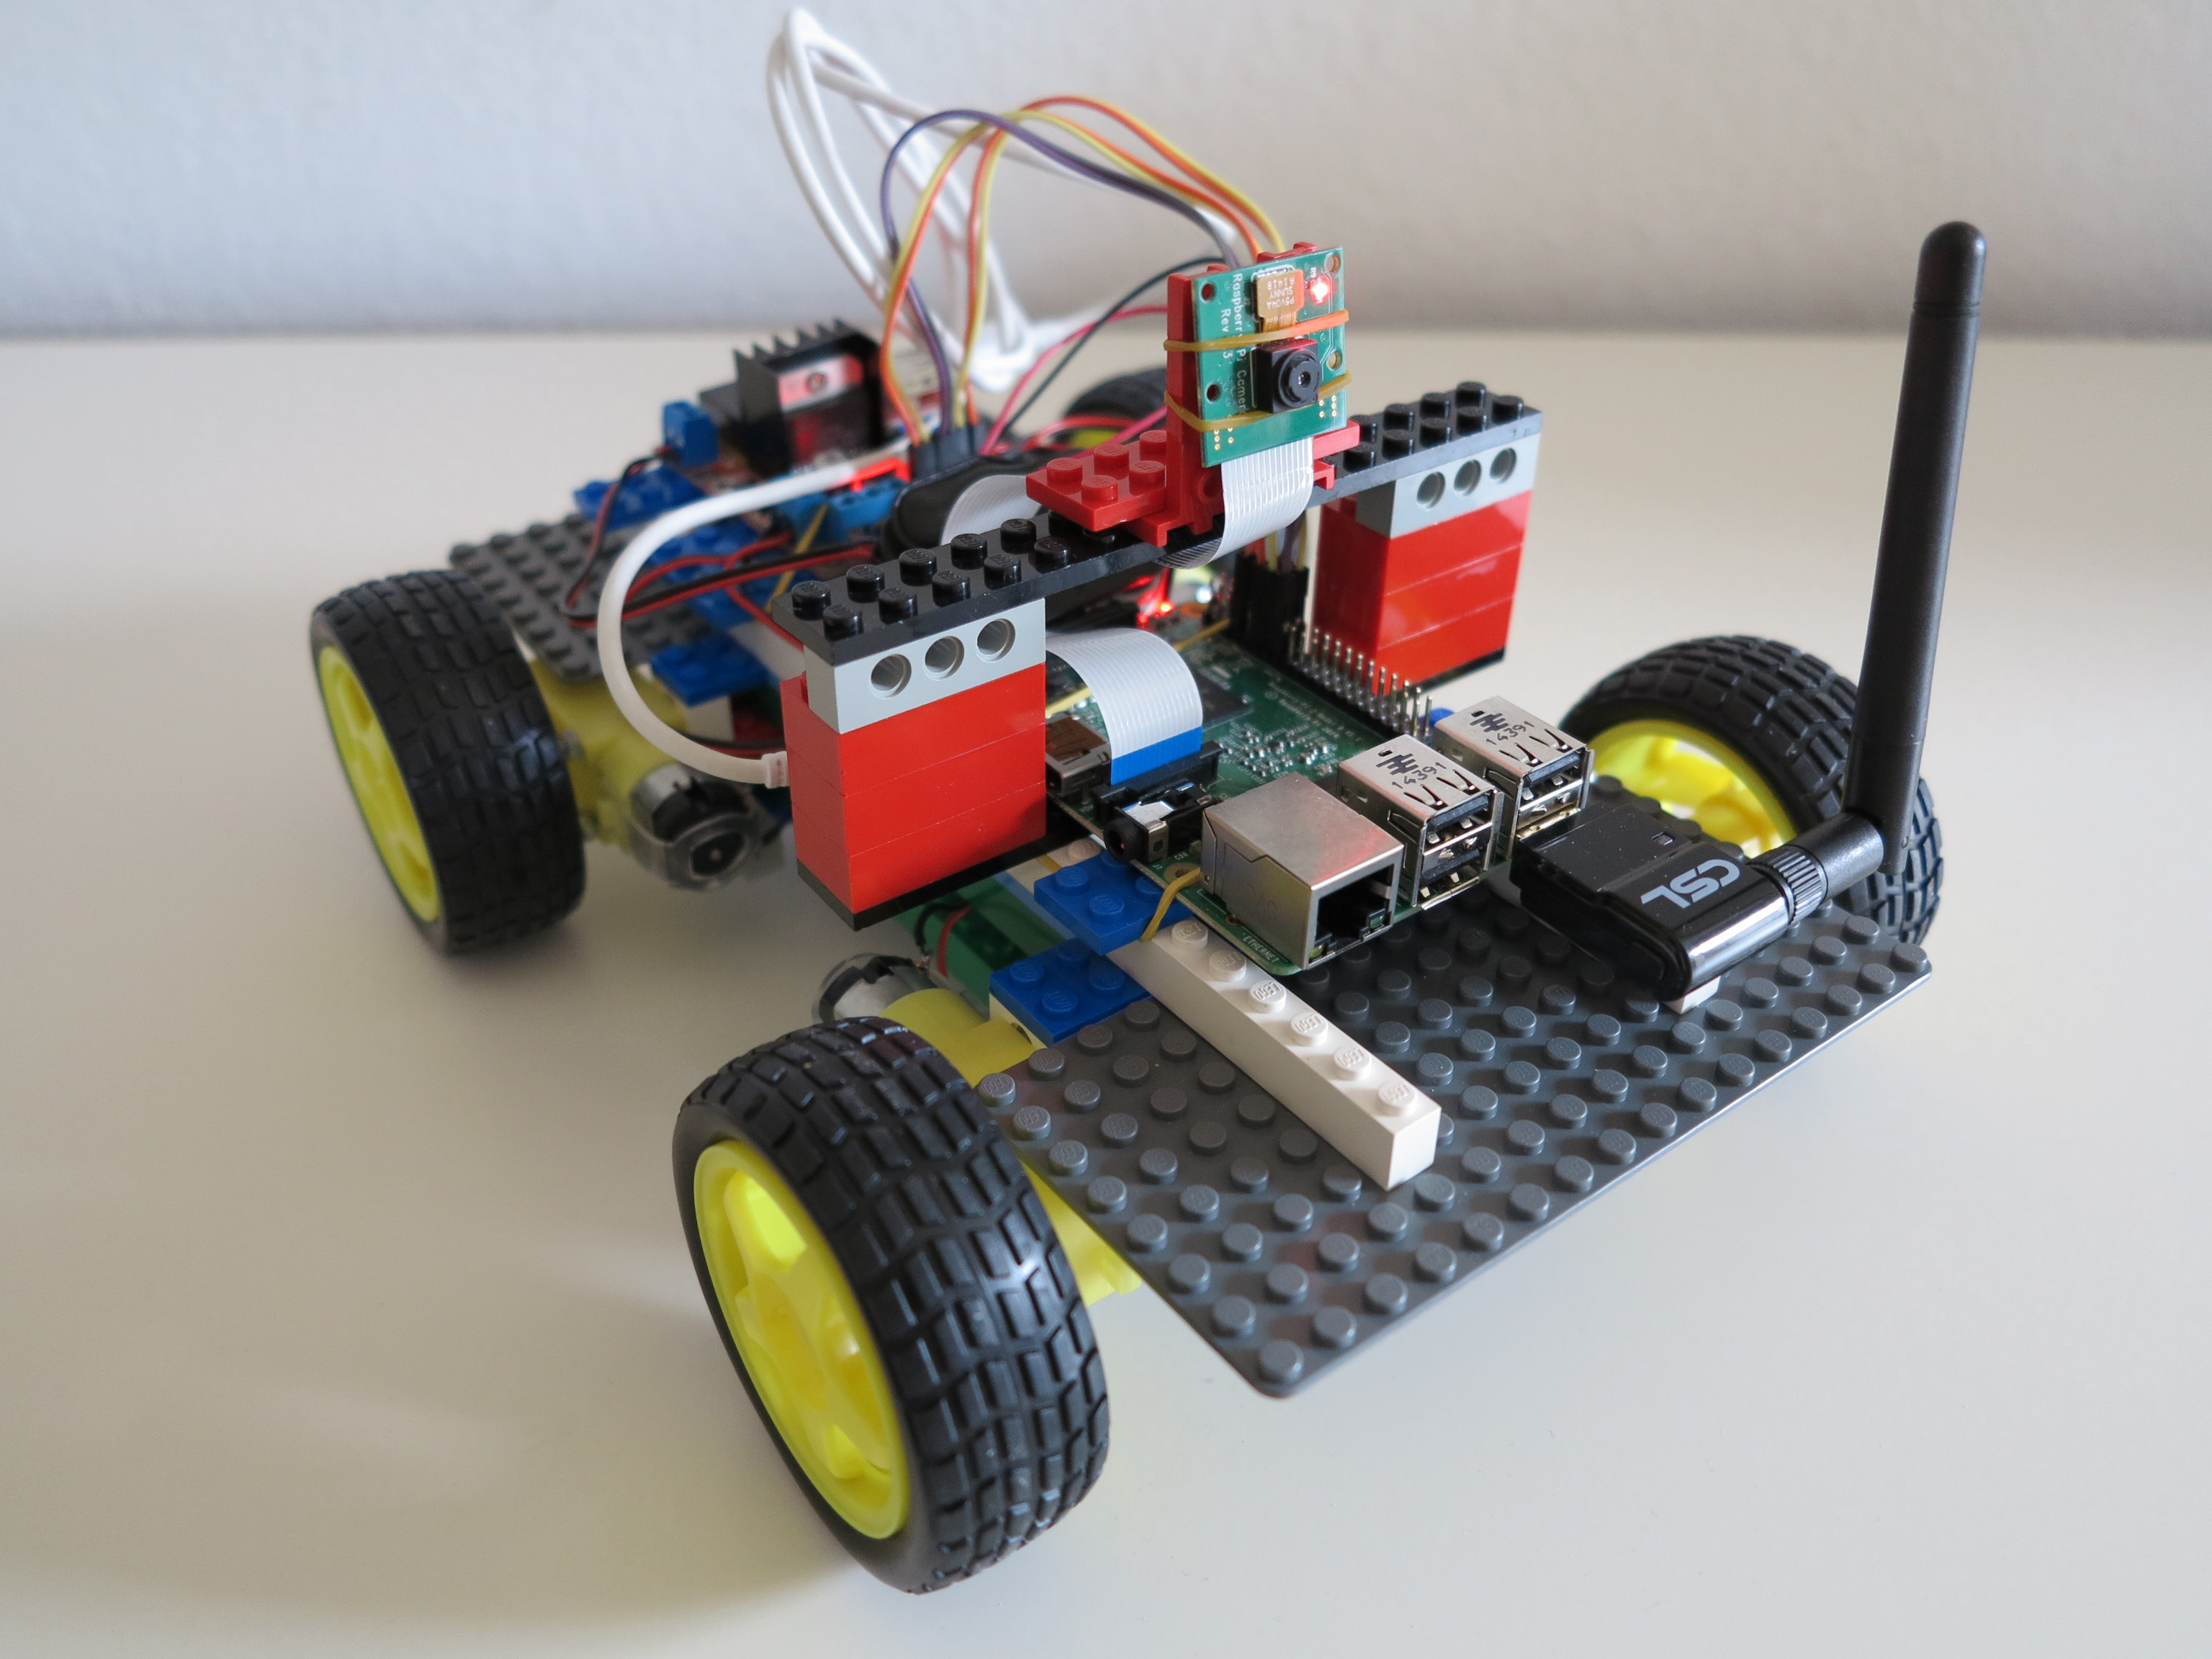 Lego Brick Wheel Robot Raspberry Pi Ready To Rumble